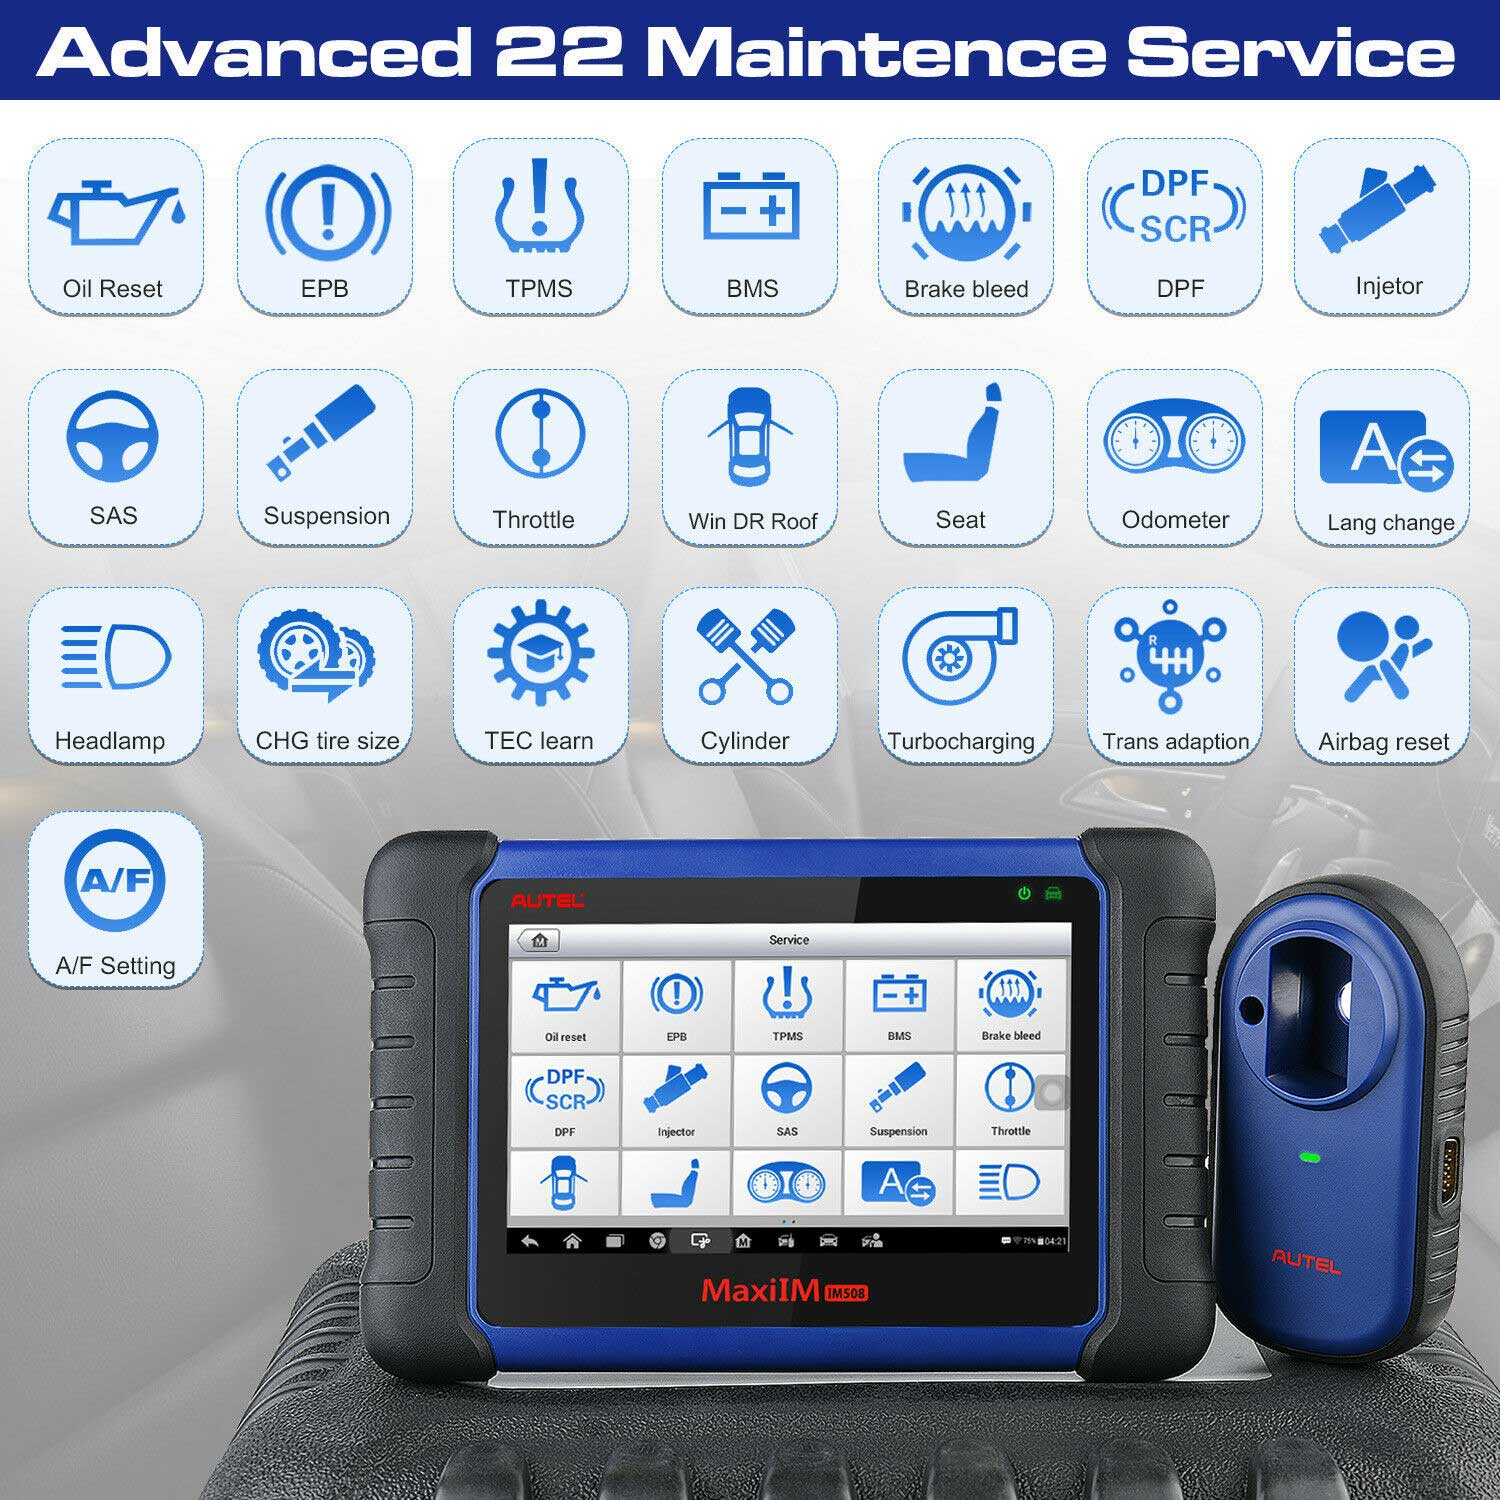 MaxiIM IM508 Advanced 22 Maintence Service